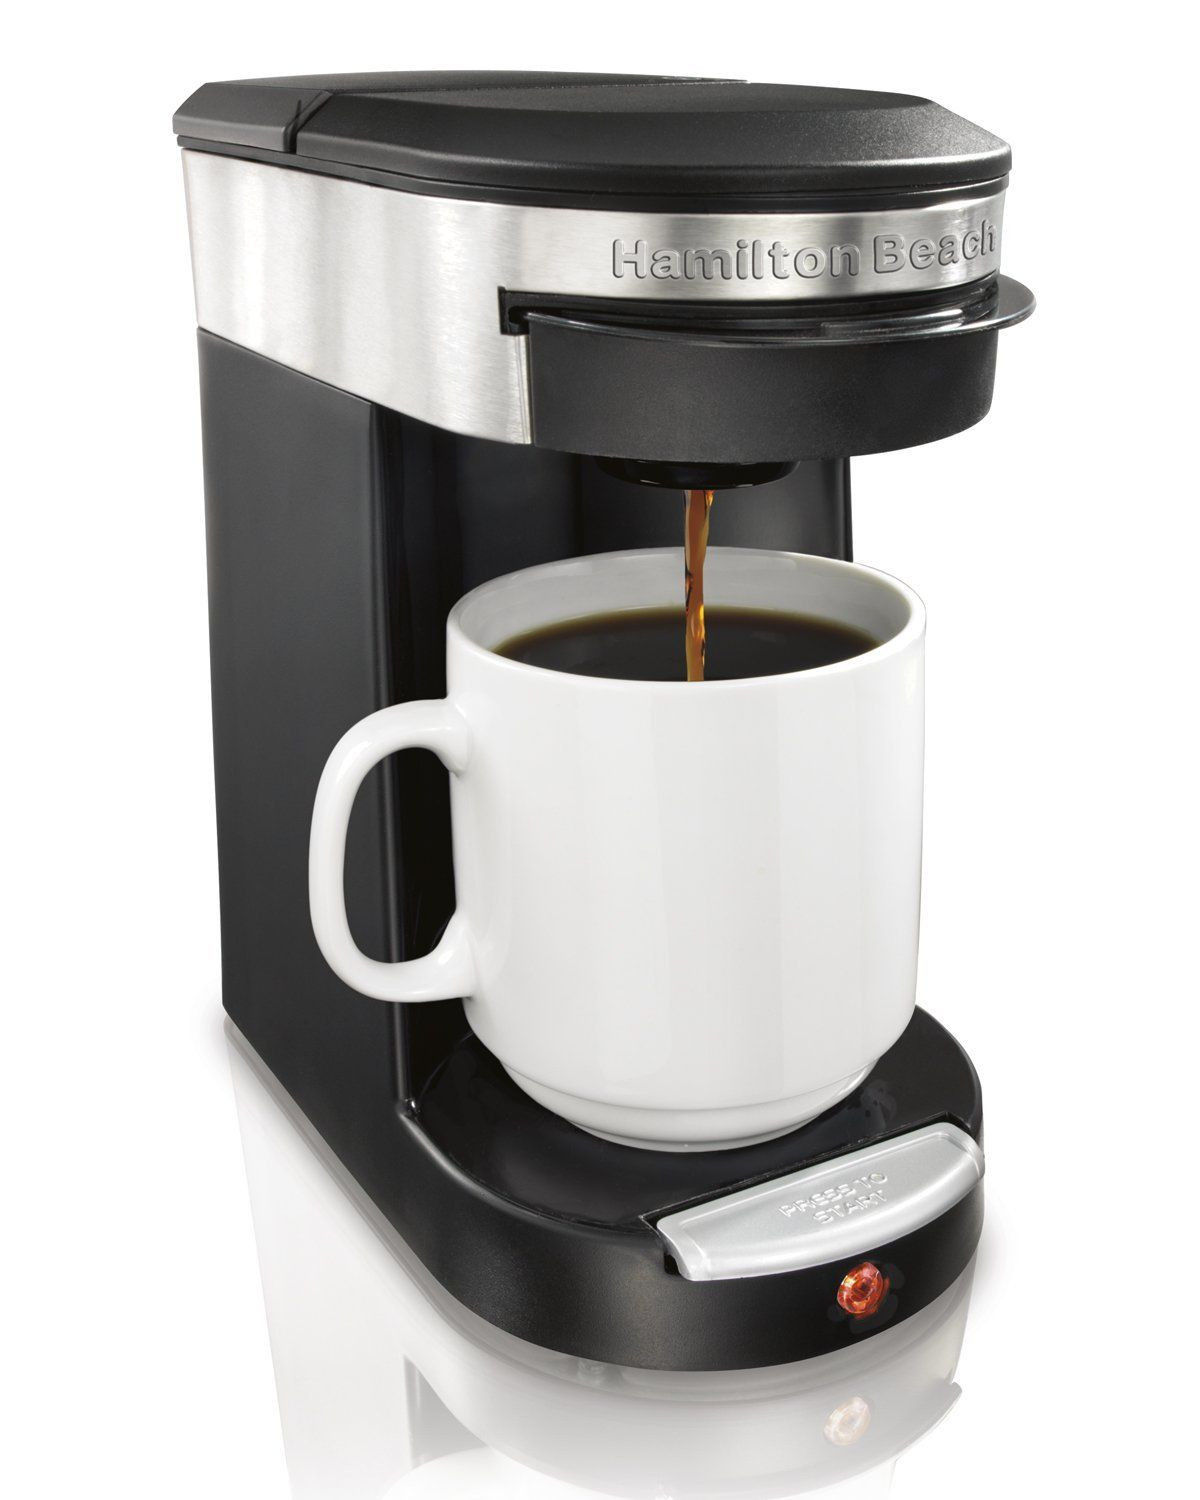 Hamilton Beach 49970 Personal Cup One Cup Pod Brewer Click Image